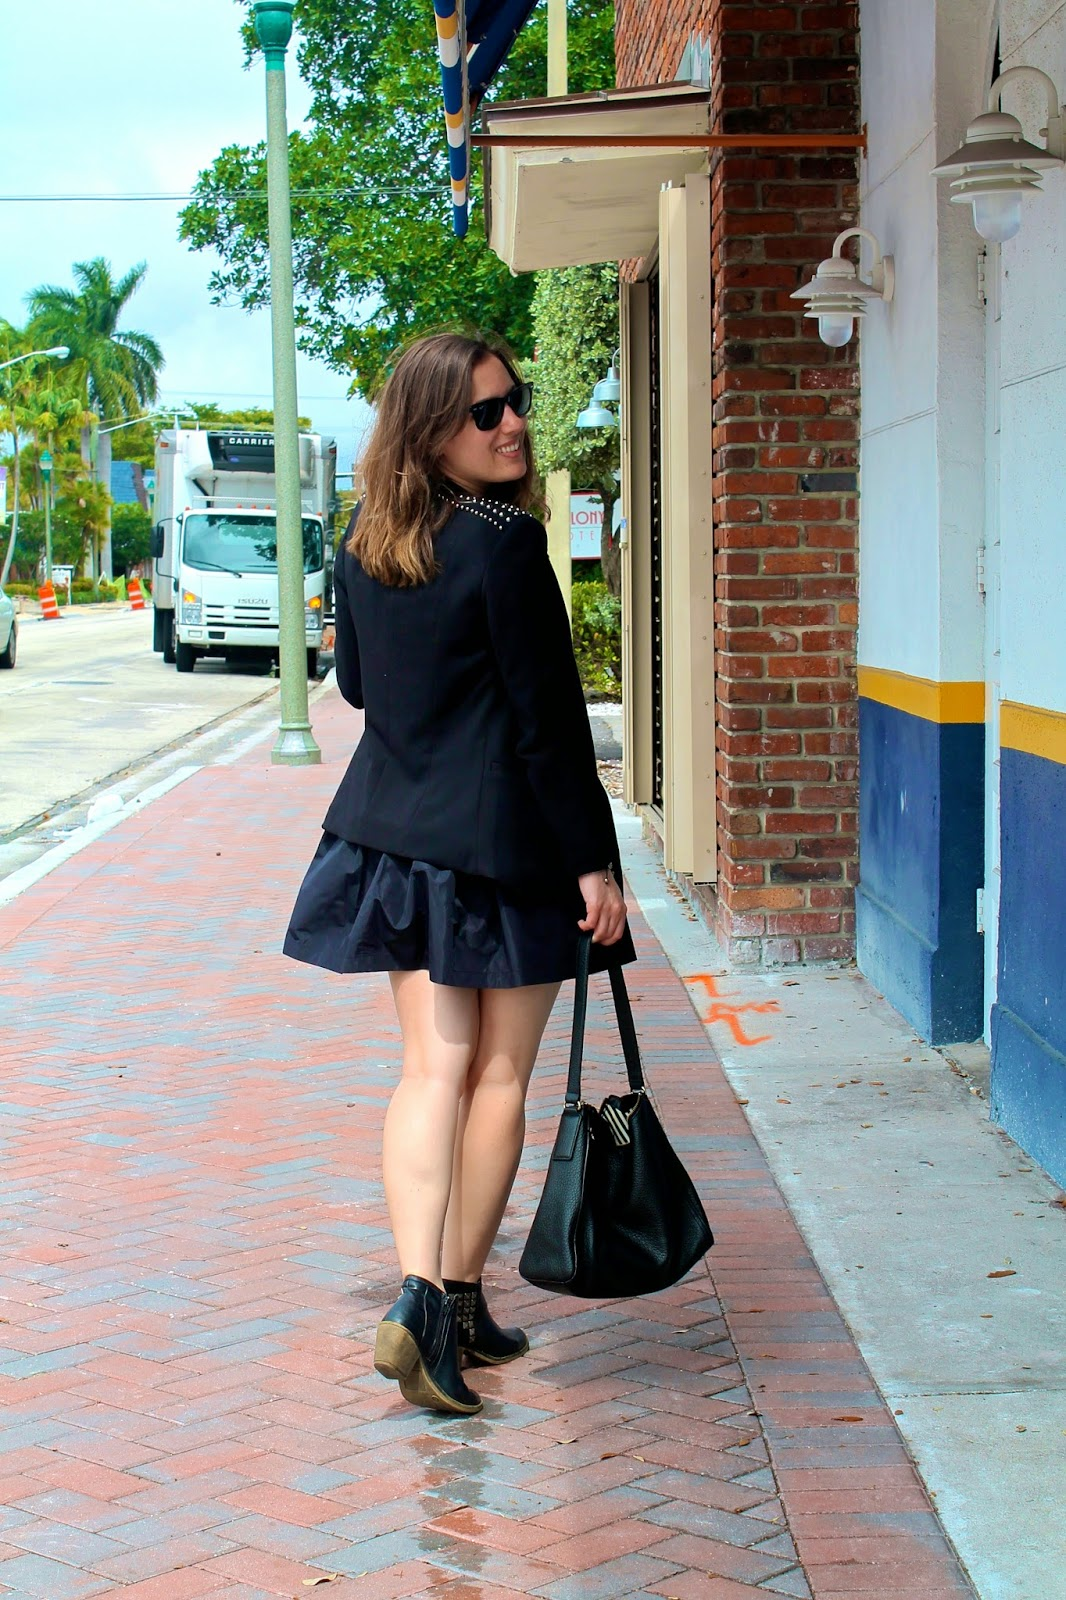 target, BCBGeneration, Kate Spade, H&M, Ray-Ban, style blog, fashion blog, South Florida blogger, fblogger, winter fashion, winter style, outfit ideas